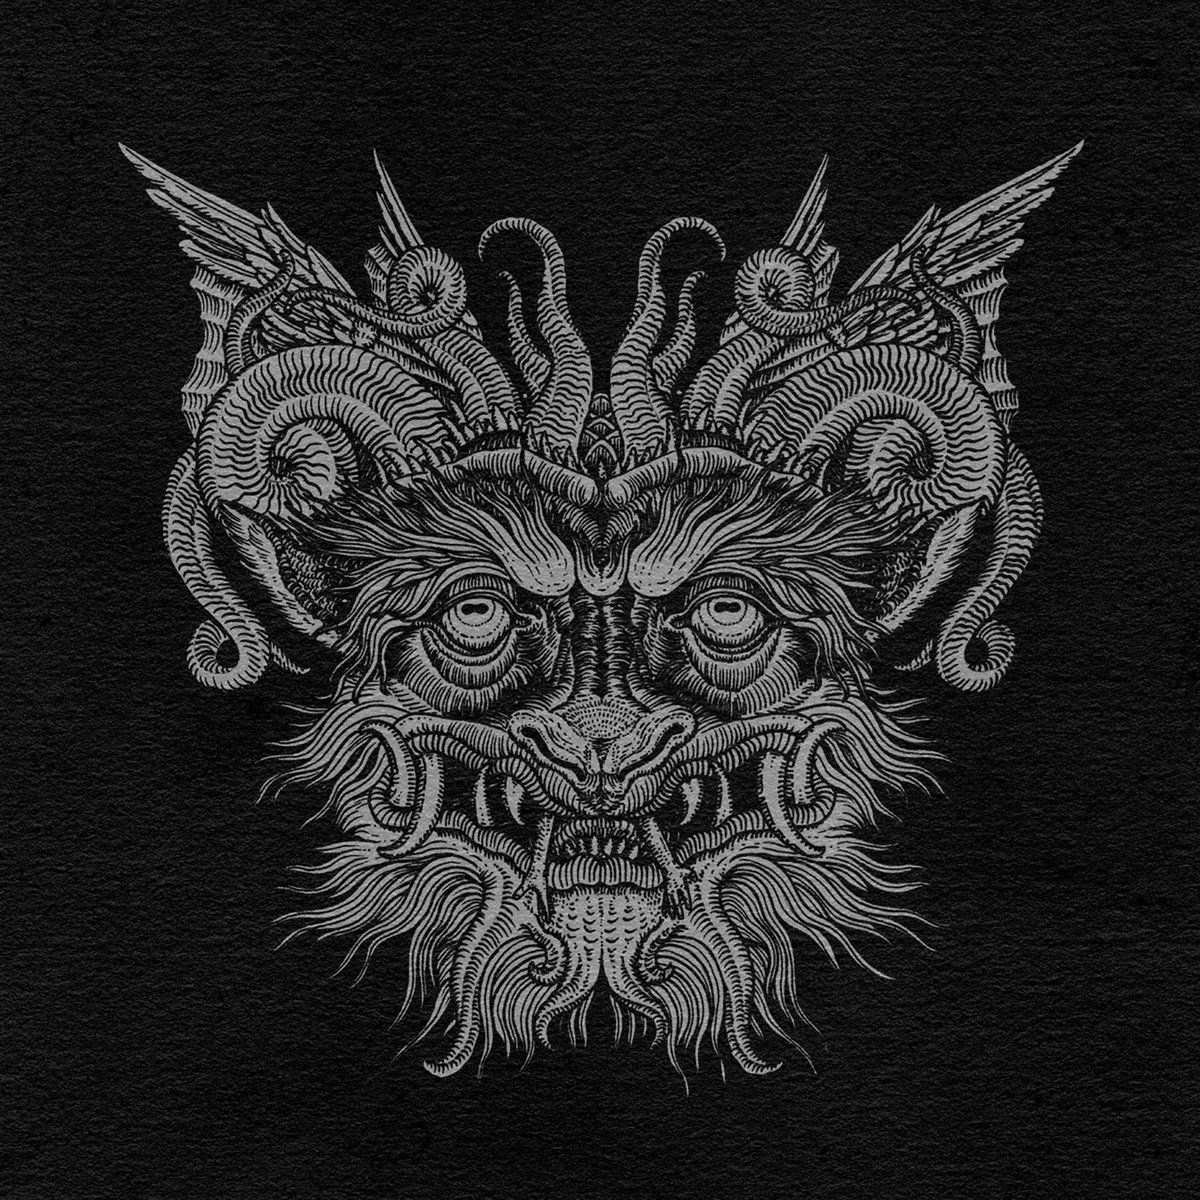 Review for Slidhr - The Futile Fires of Man